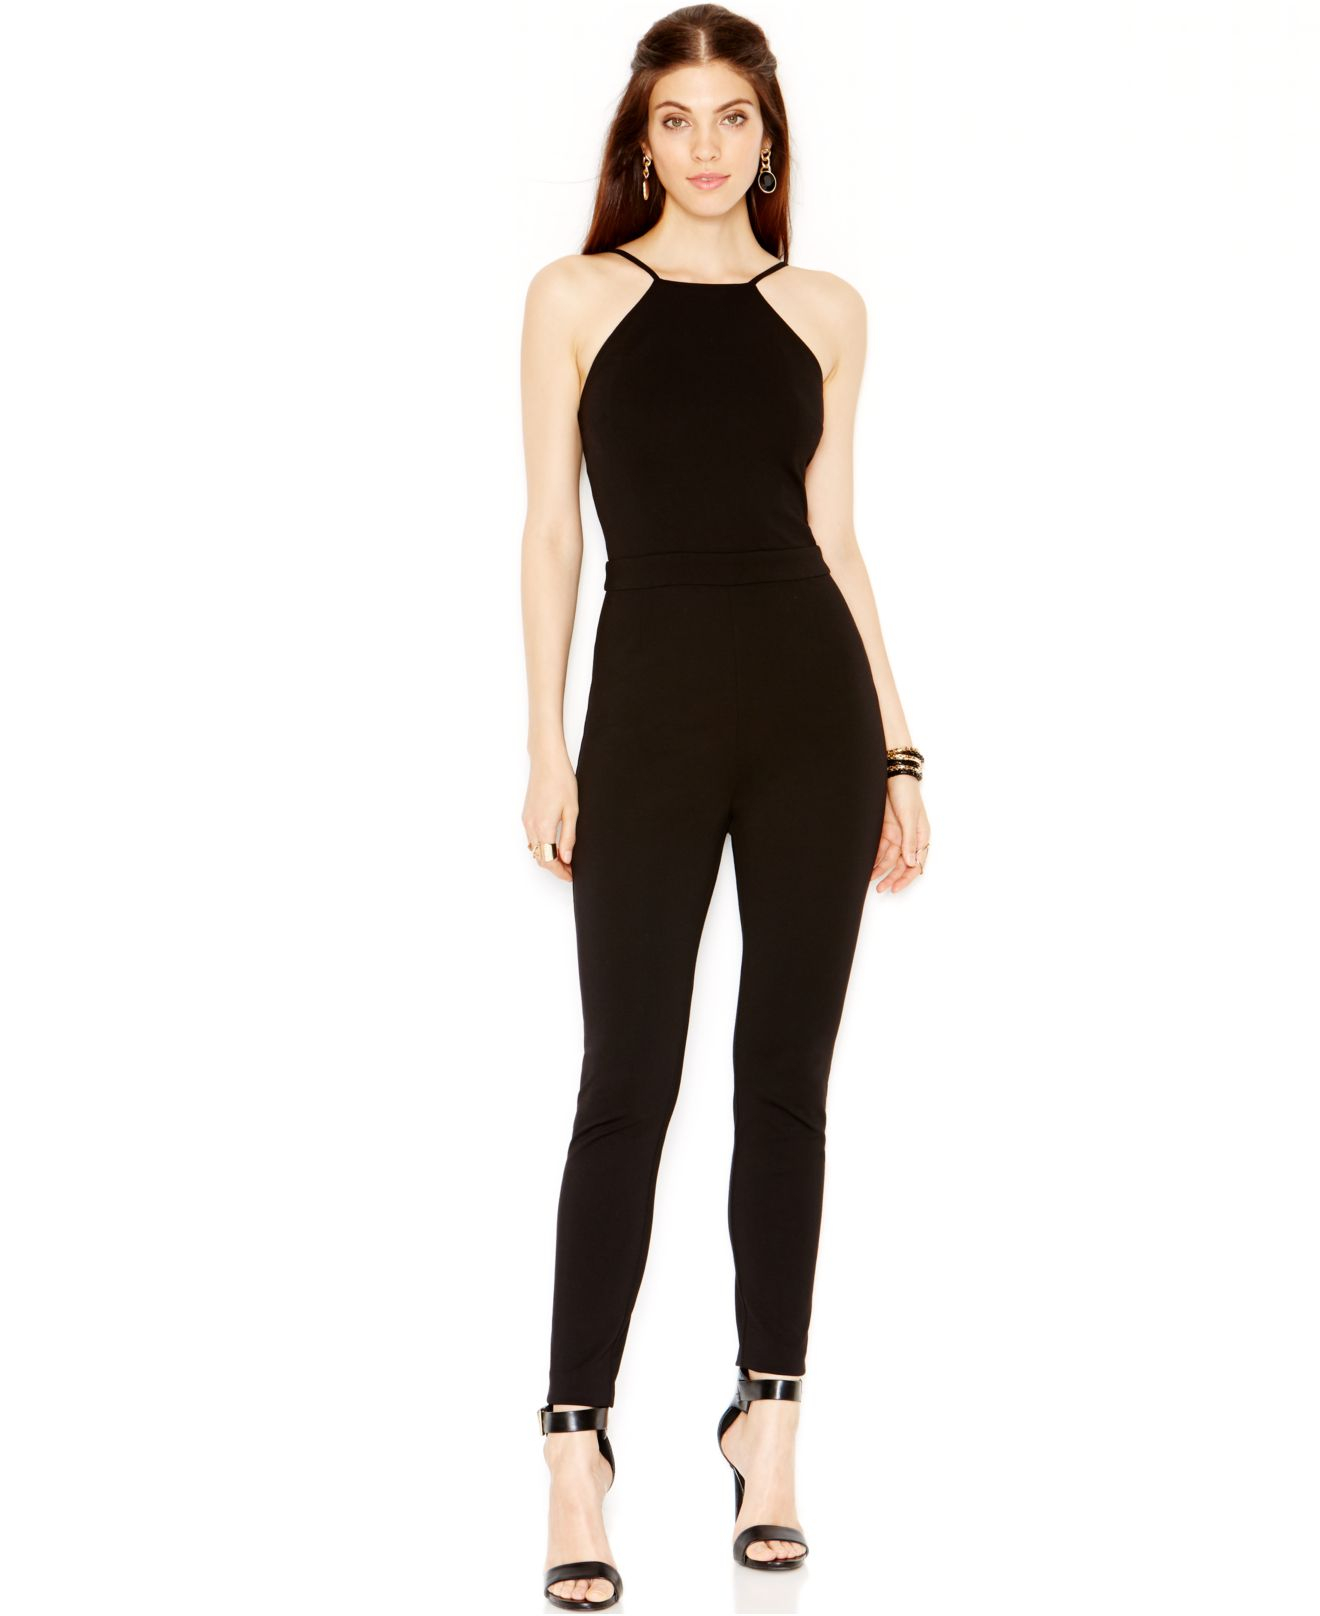 fa331b543a75 Lyst - Guess Sleeveless Banded-waist Jumpsuit in Black